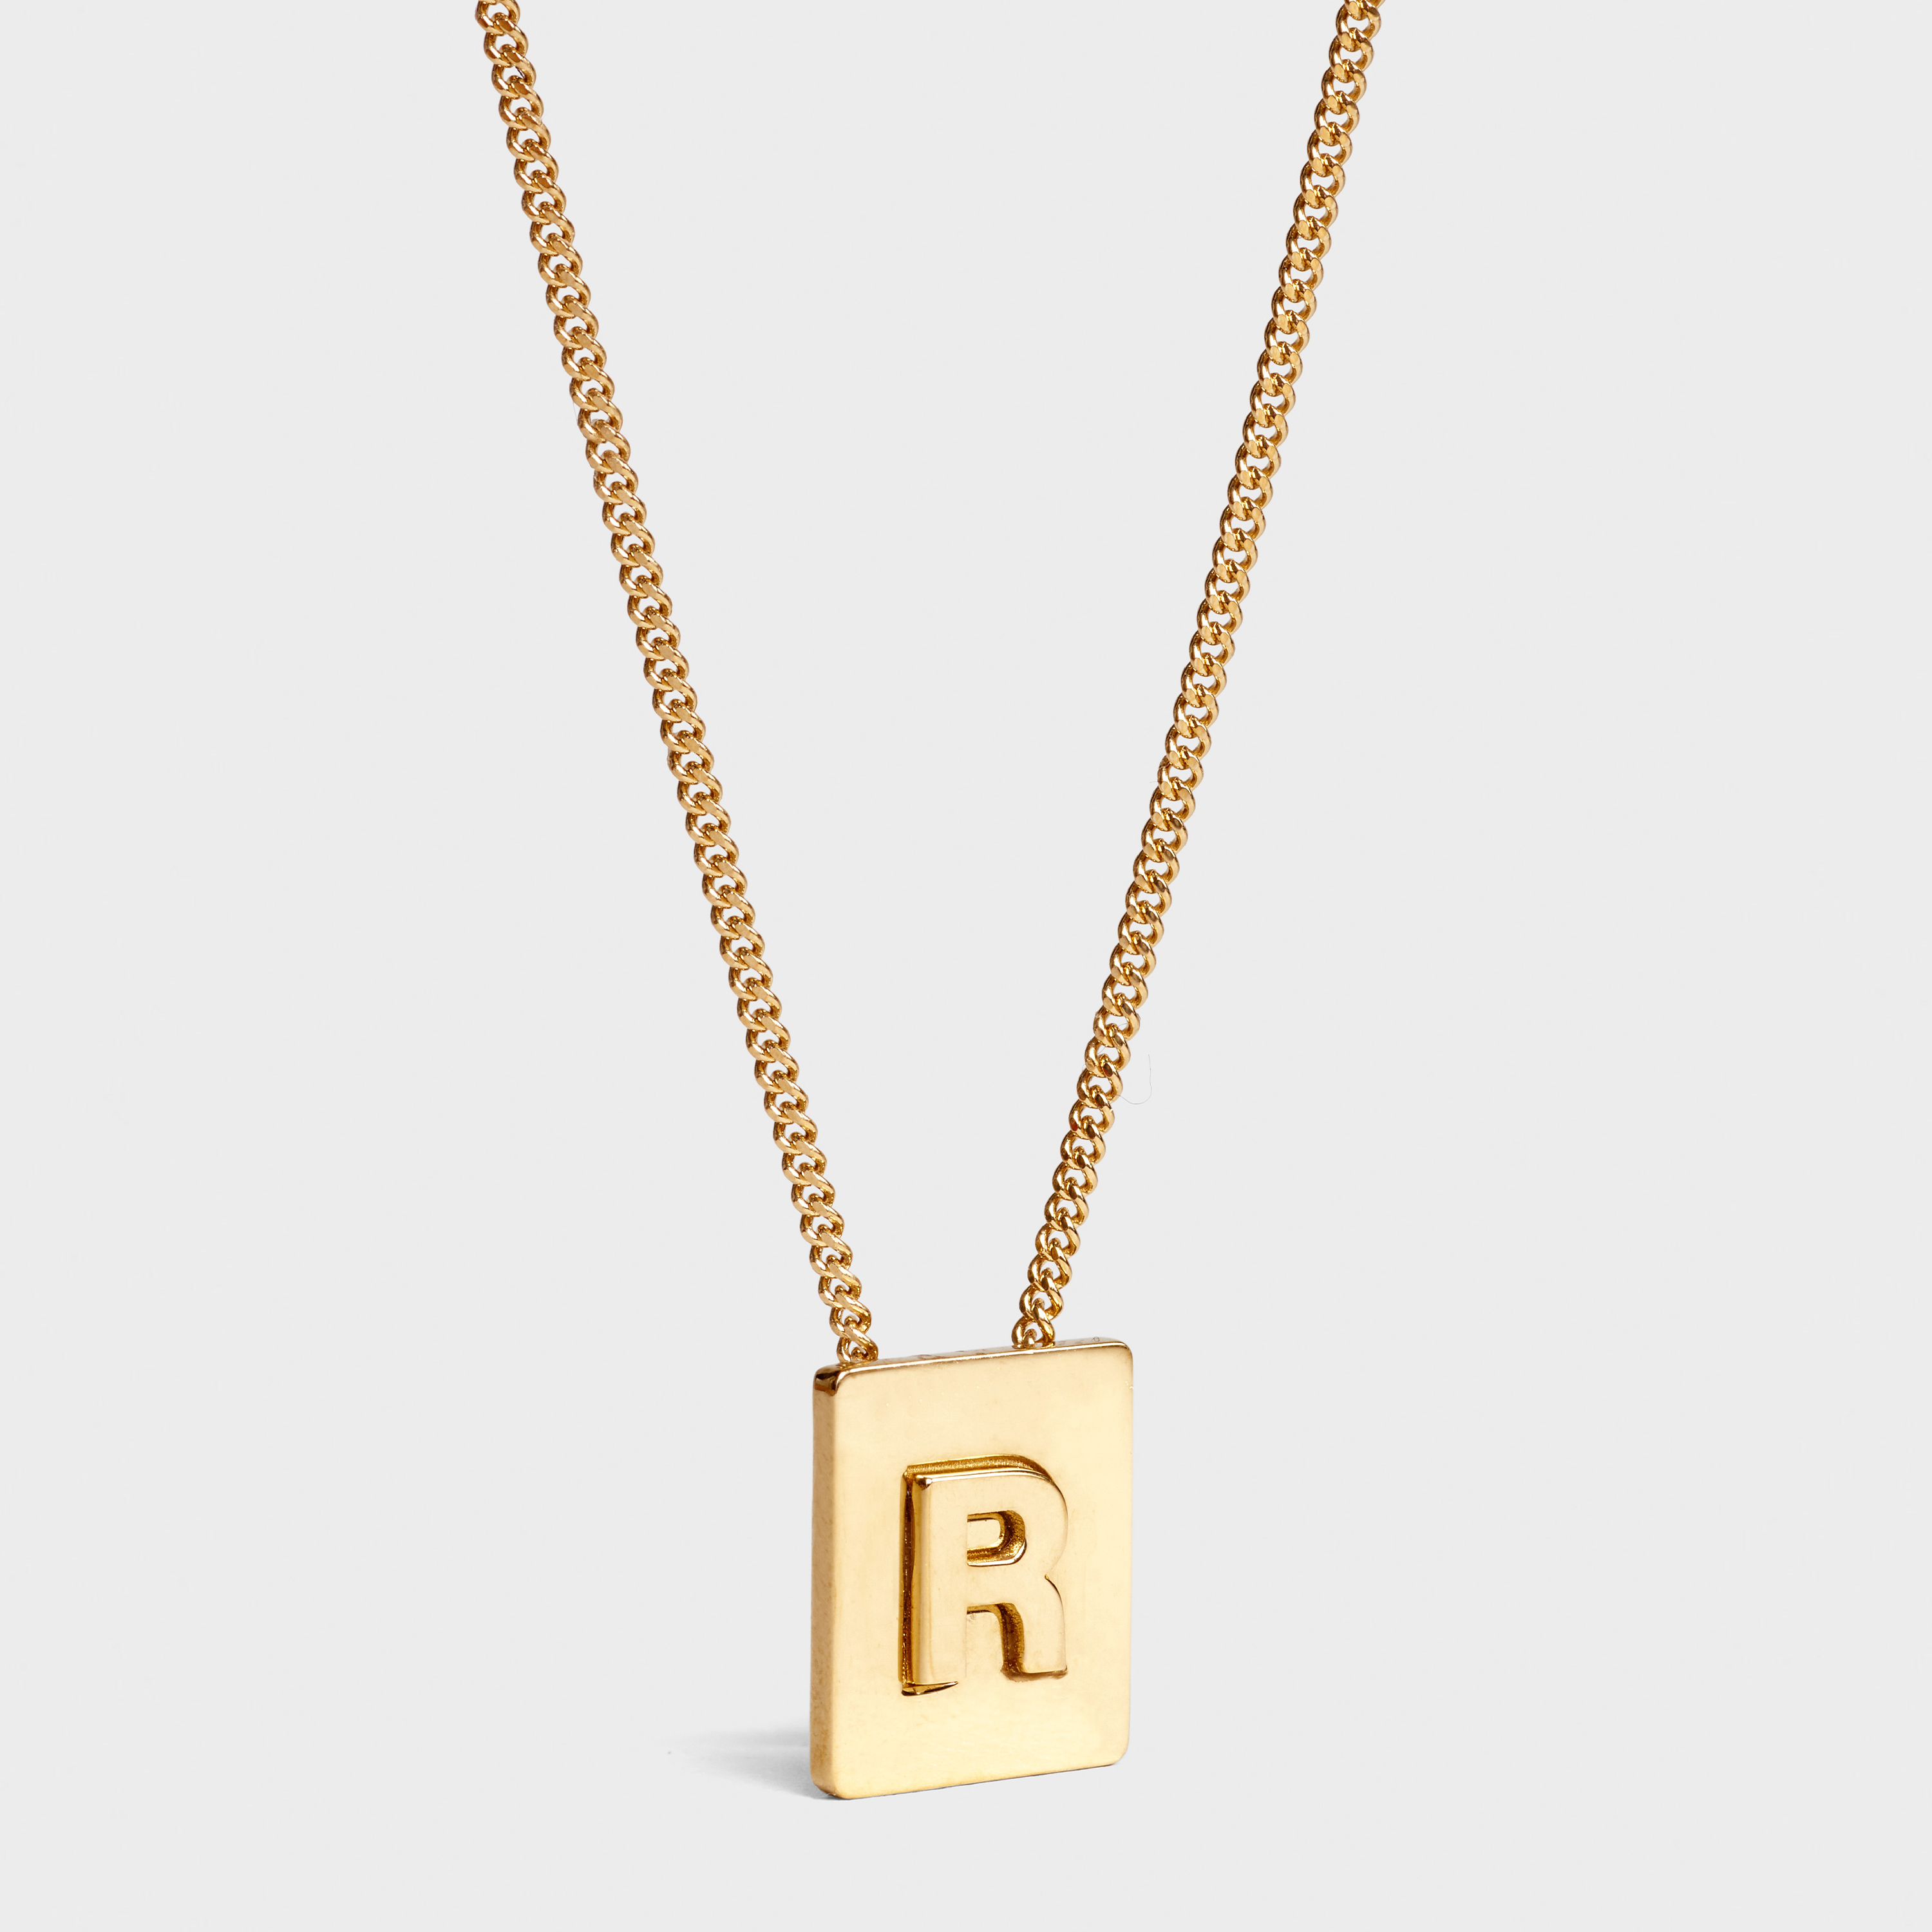 GRAND Initial Necklace Letter R Architectural Brass Letter Necklace